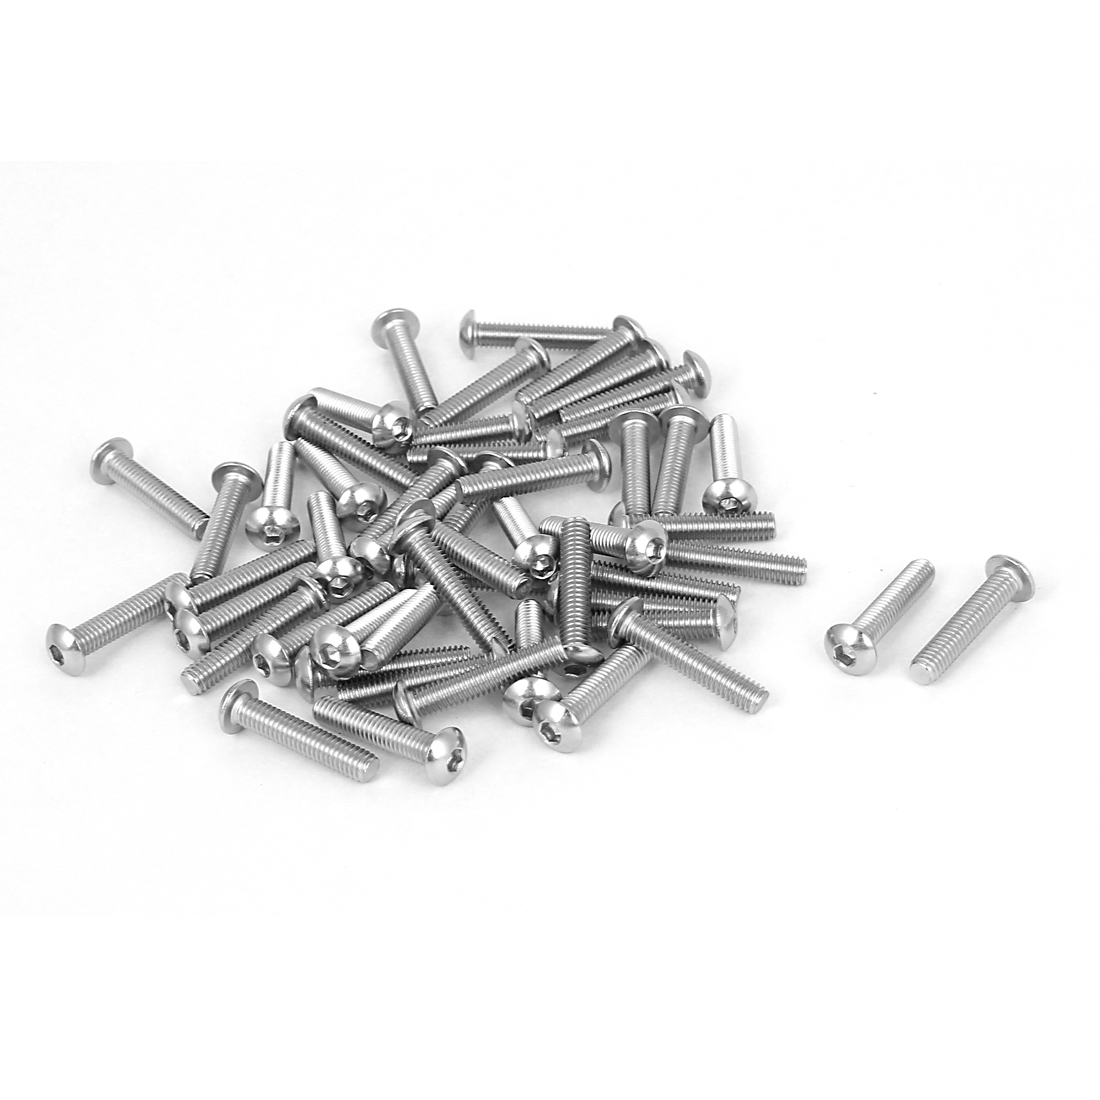 50 Pcs 2.5mm Hex Socket Key Stainless Steel Button Head Screws M4x0.7mmx20mm